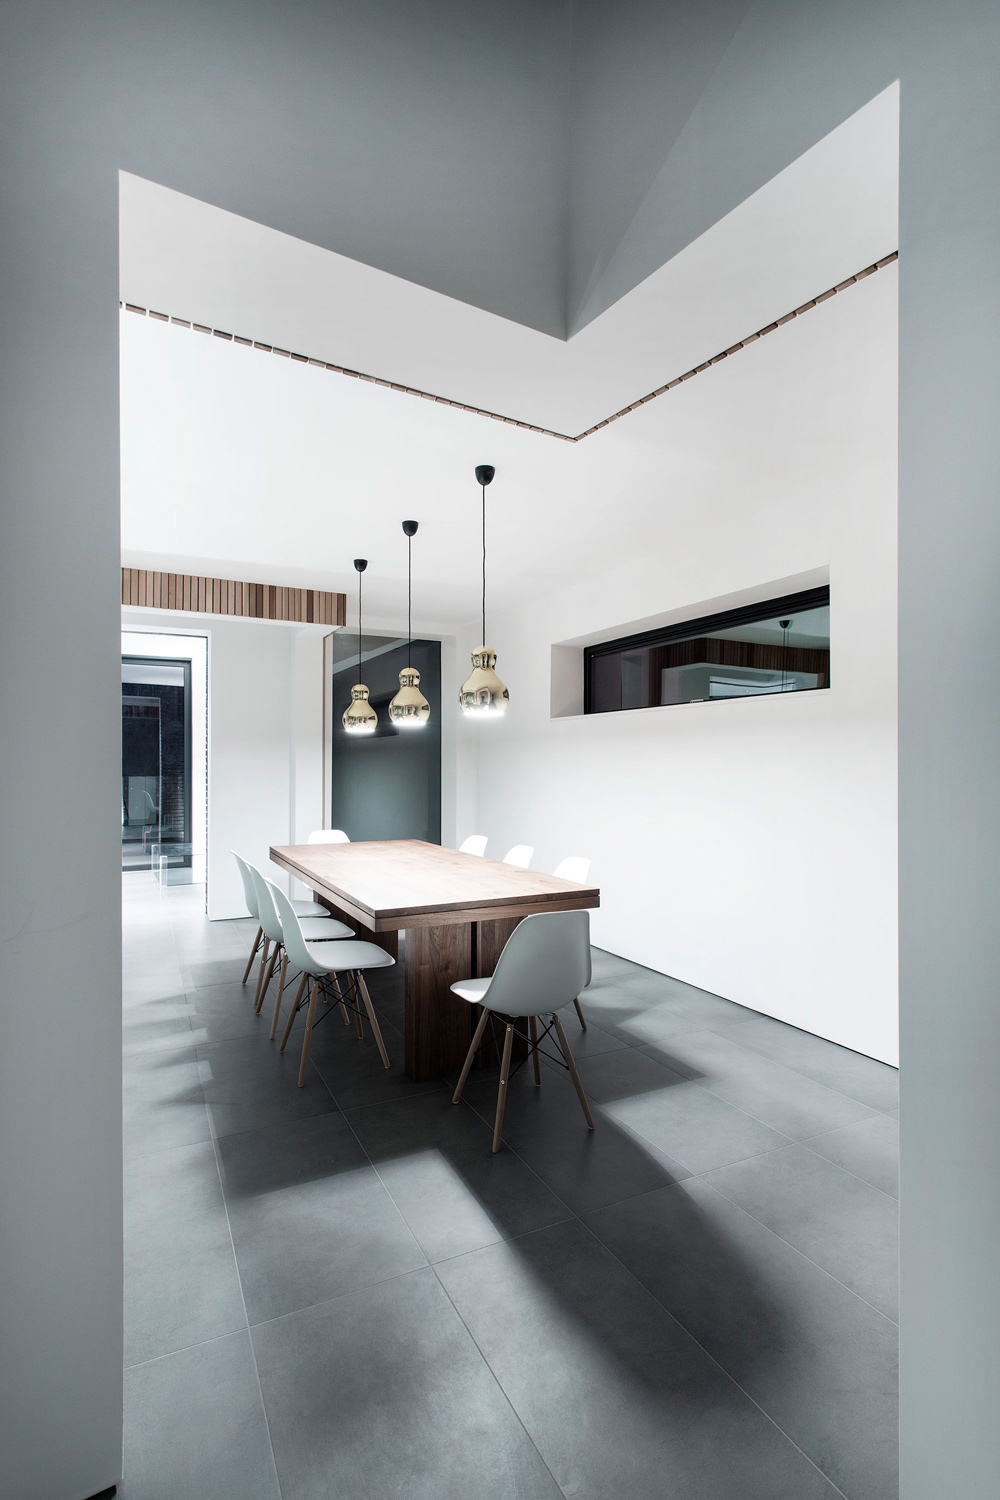 Dining Space, Pendant Lighting, Modern Home in Hampshire, England